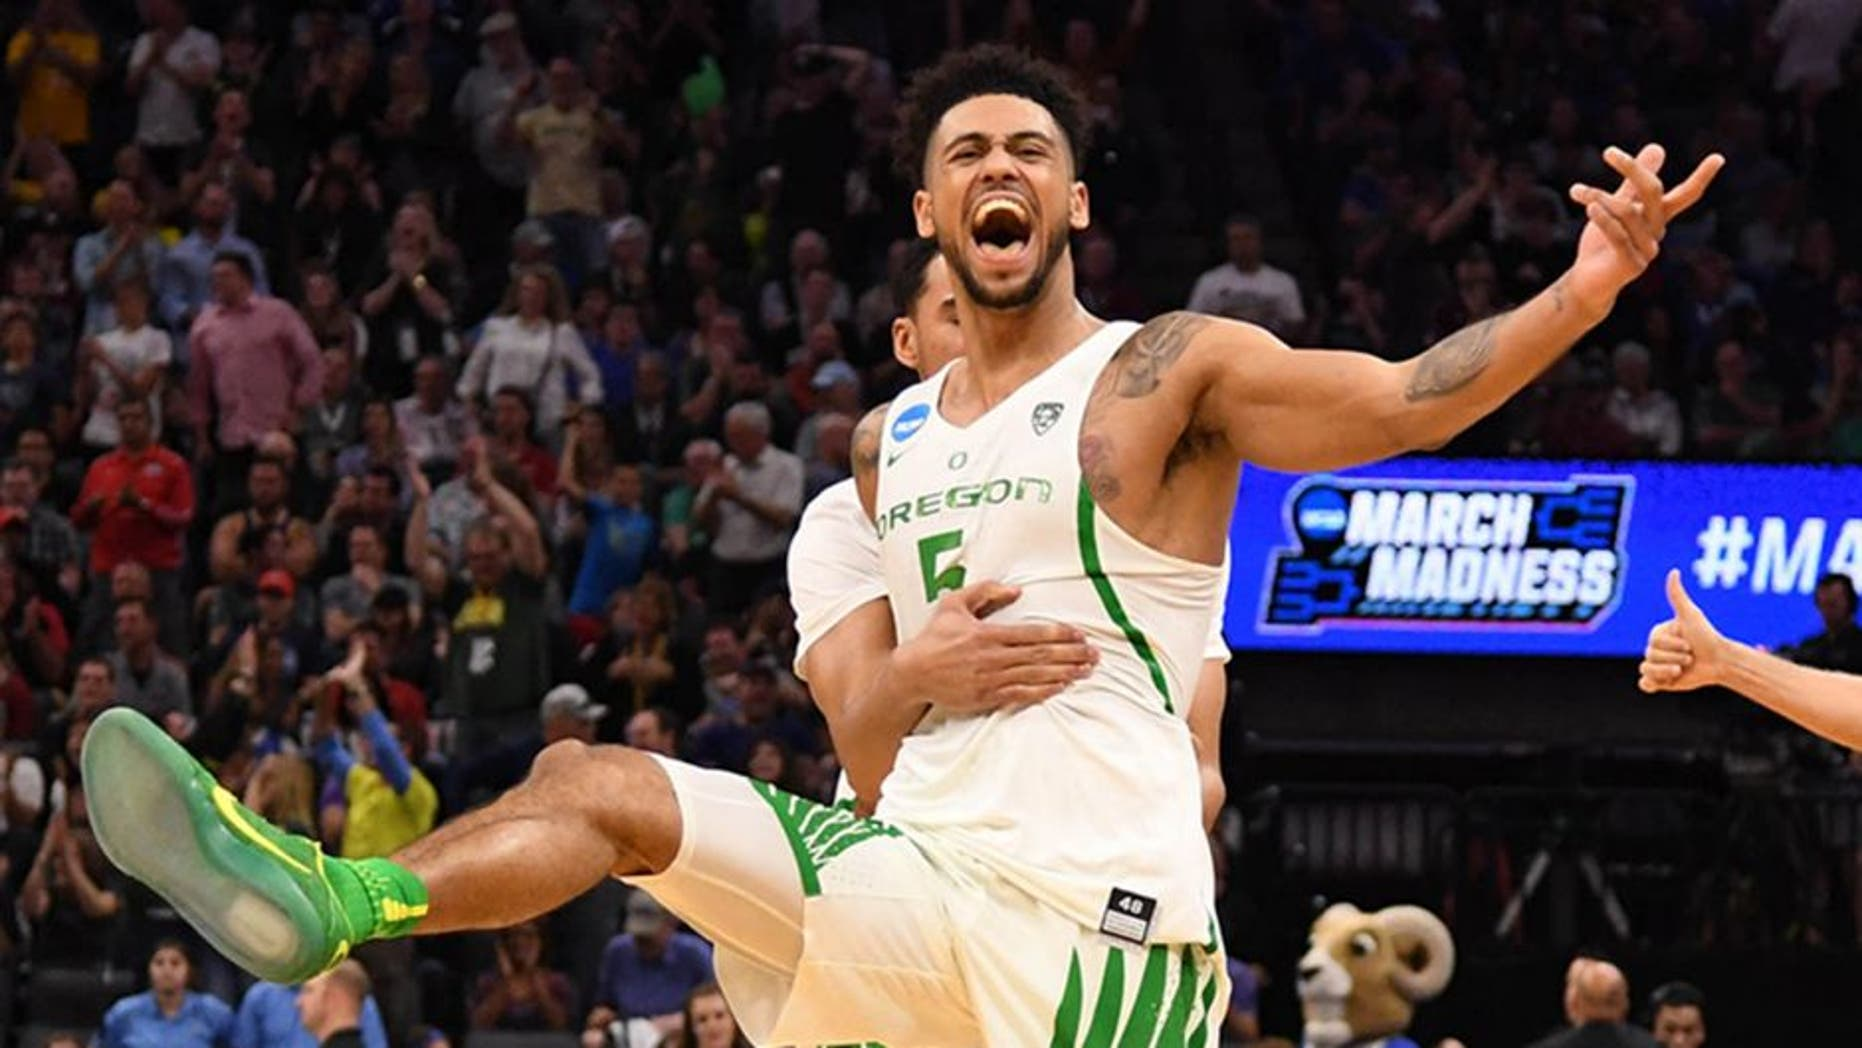 Mar 19, 2017; Sacramento, CA, USA; Oregon Ducks guard Tyler Dorsey (5) celebrates with teammates after the win against Rhode Island Rams during the second round of the 2017 NCAA Tournament at Golden 1 Center. Mandatory Credit: Kyle Terada-USA TODAY Sports